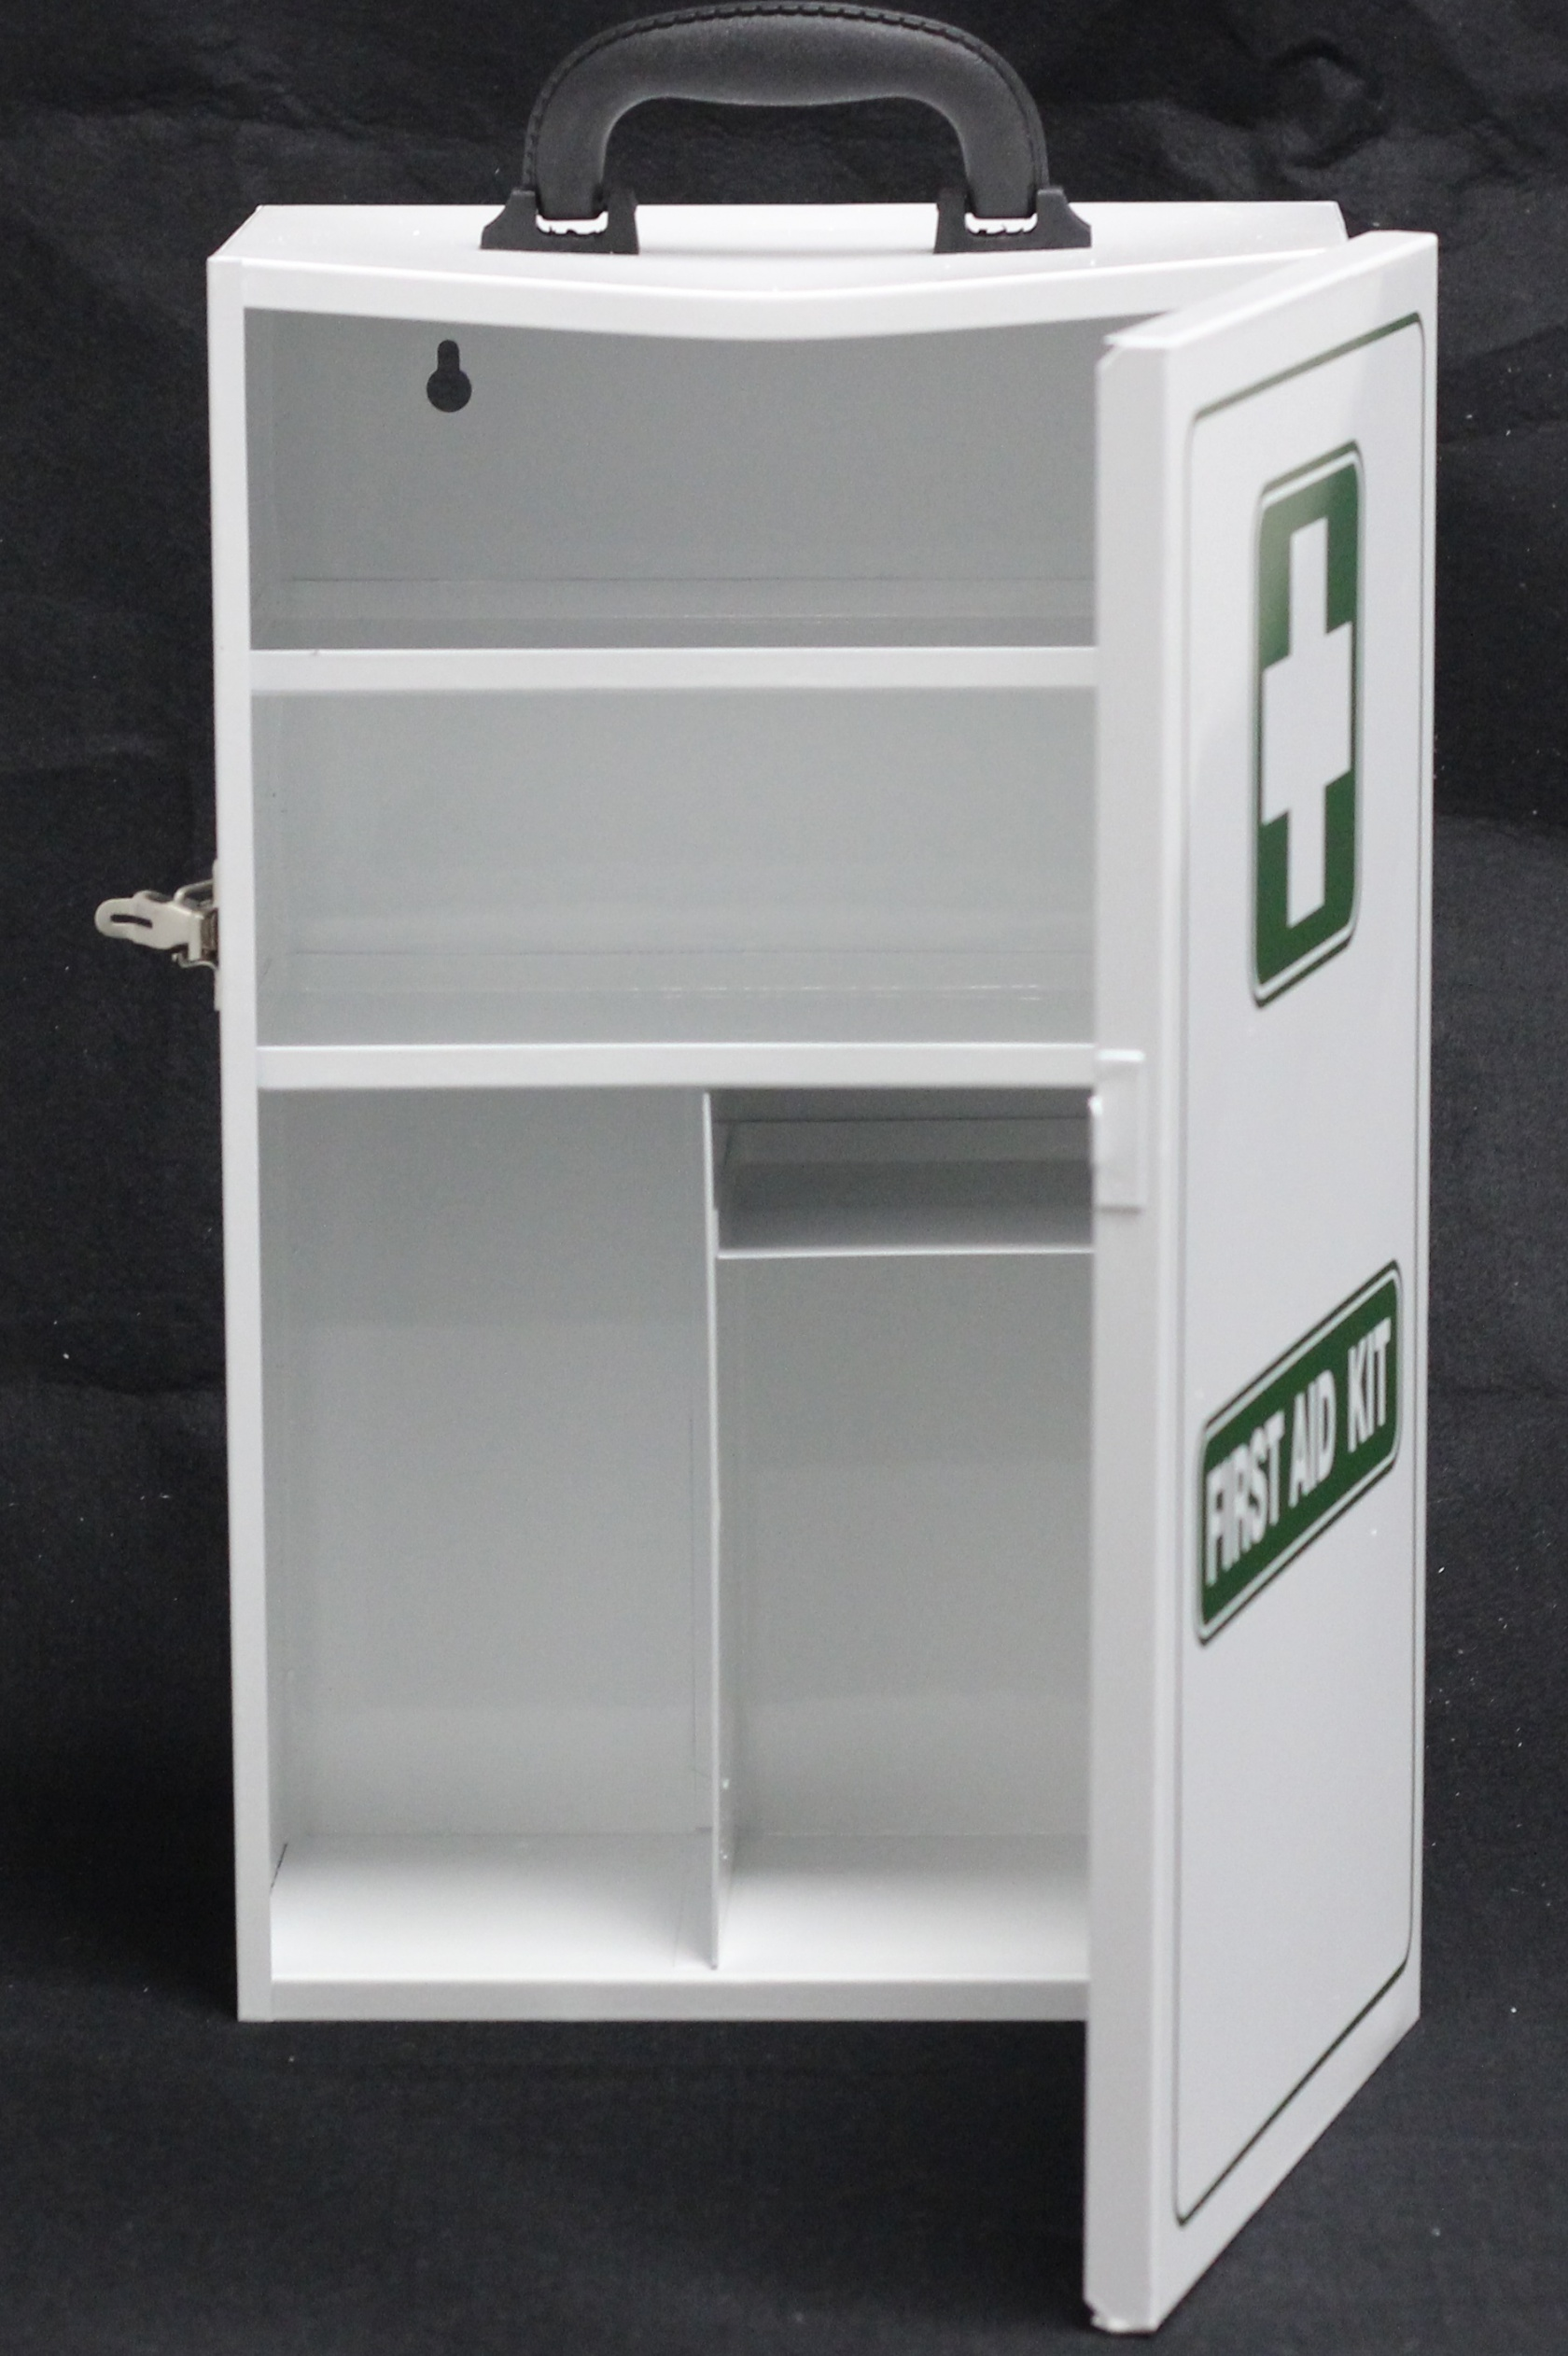 First Aid Cabinet - EMPTY Metal Cabinet White 450x280x150mm